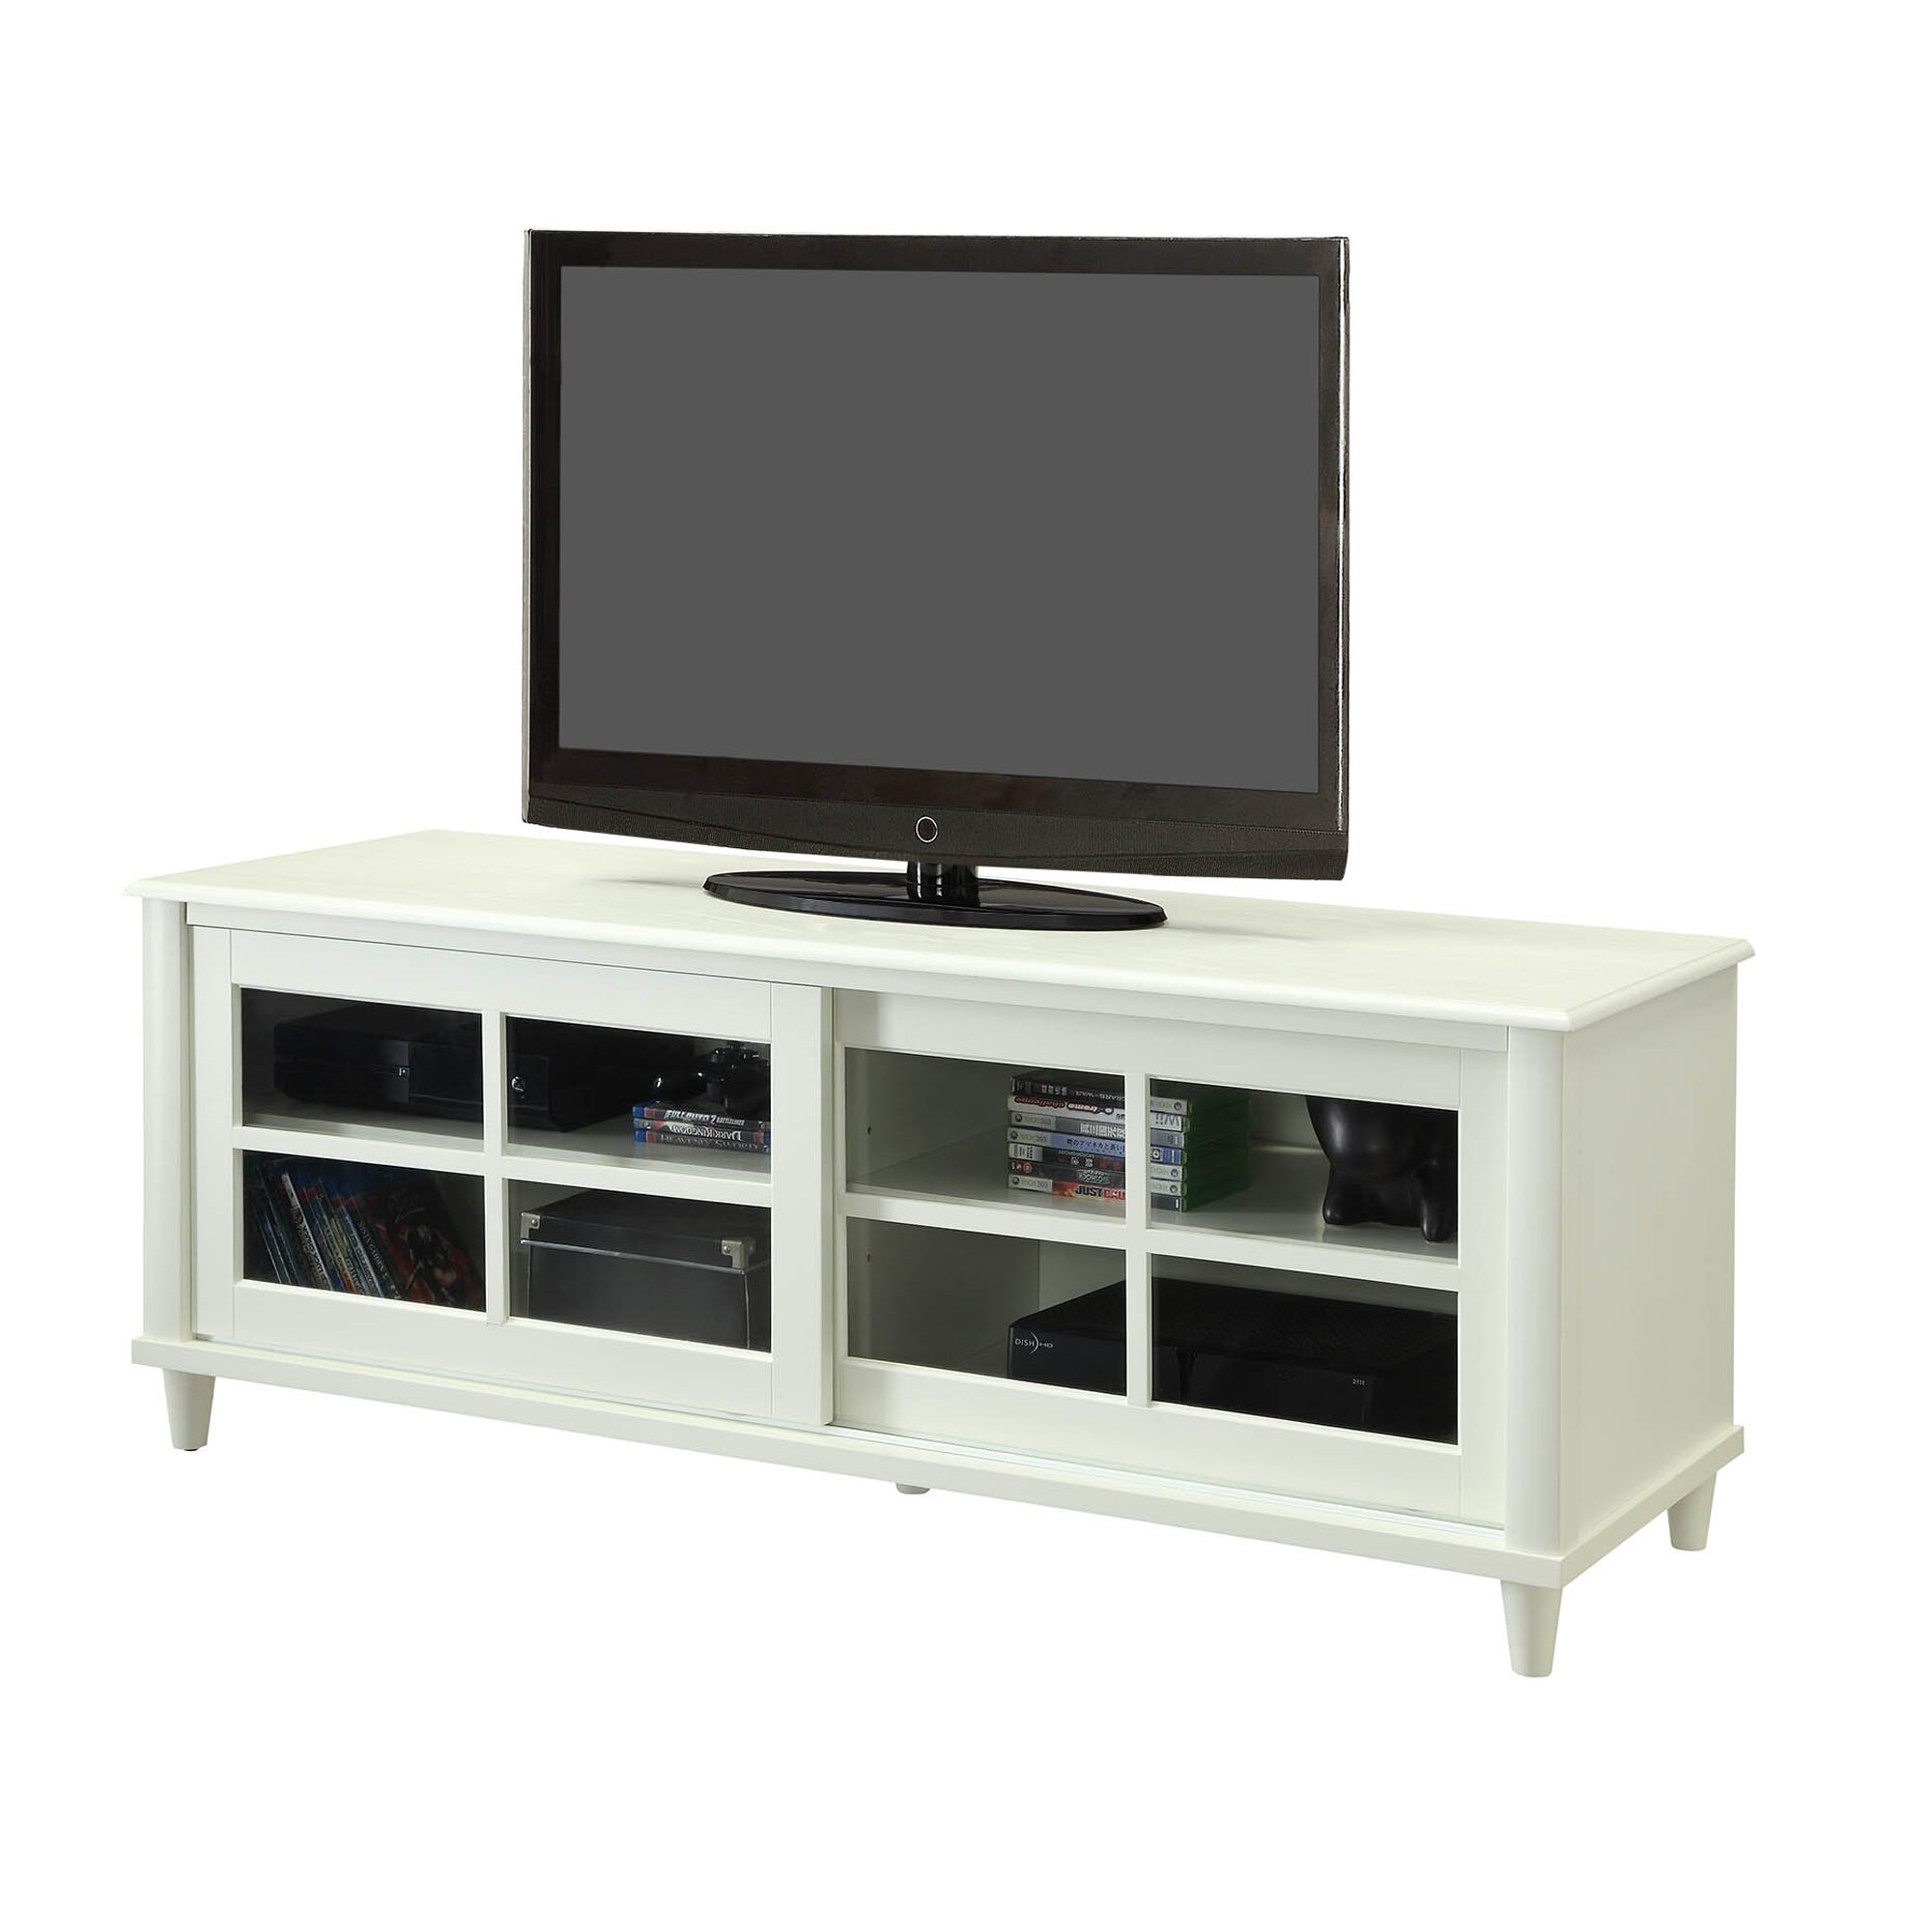 Convenience Concepts French Country TV Stand amp Reviews  : Convenience Concepts French Country TV Stand from www.wayfair.com size 2000 x 2000 jpeg 235kB